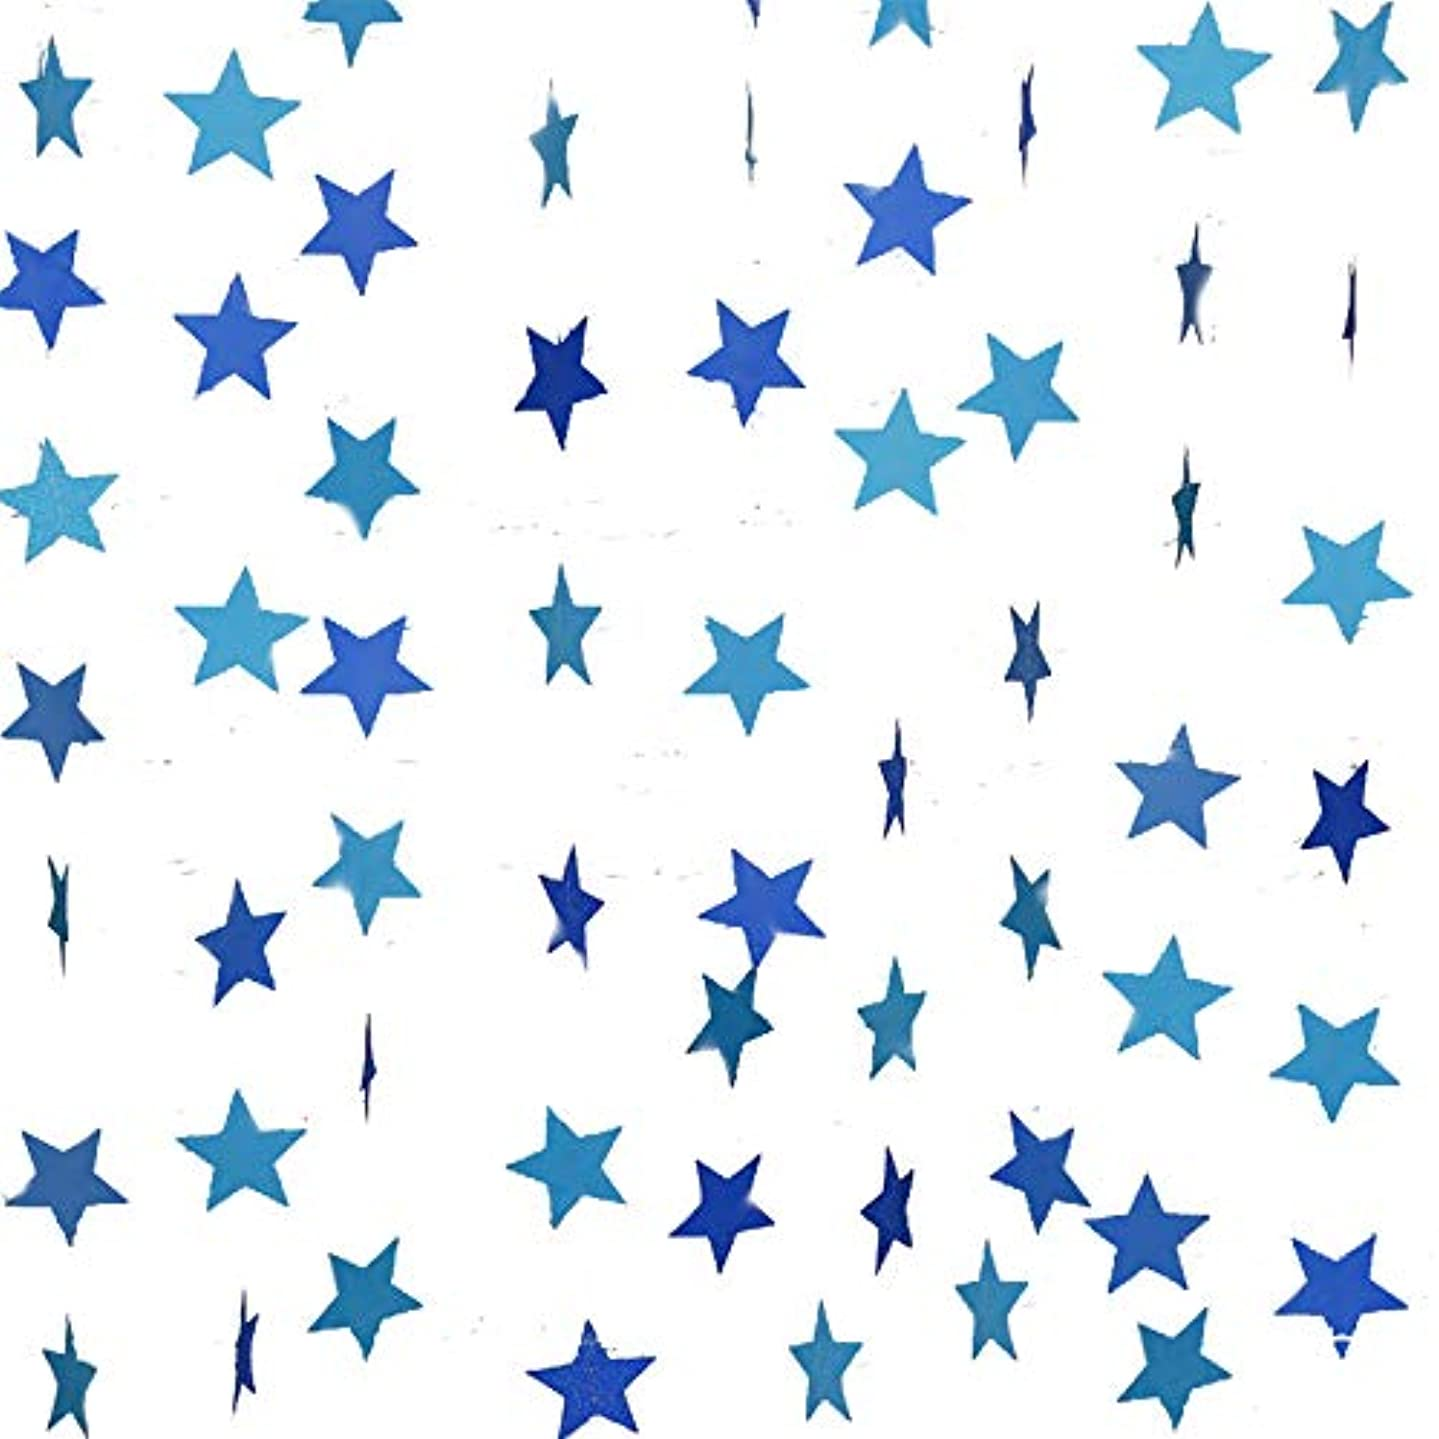 Gender Reveal Party Decorations 2pcs Twinkle, Twinkle Blue Paper Star Garland Star String Baby Shower Decorations, Birthday Decorations, Boy Girl Gender Reveal Party Supplies